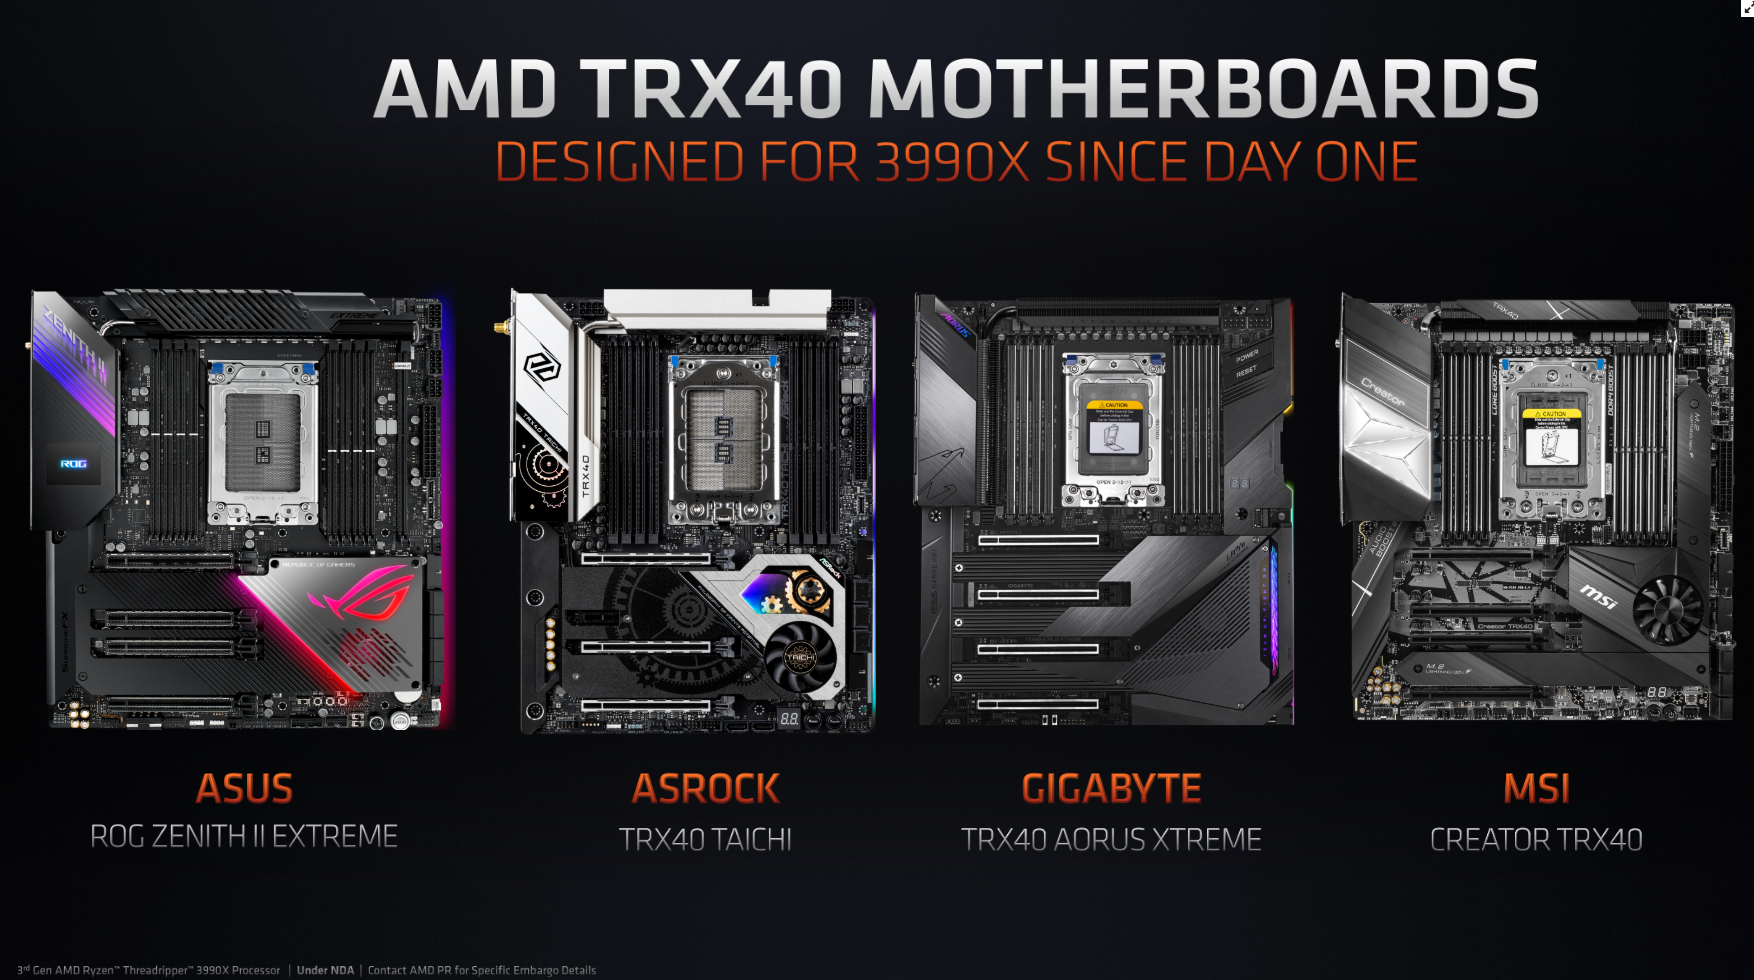 3990X-Ready TRX40 Motherboards Line-Up